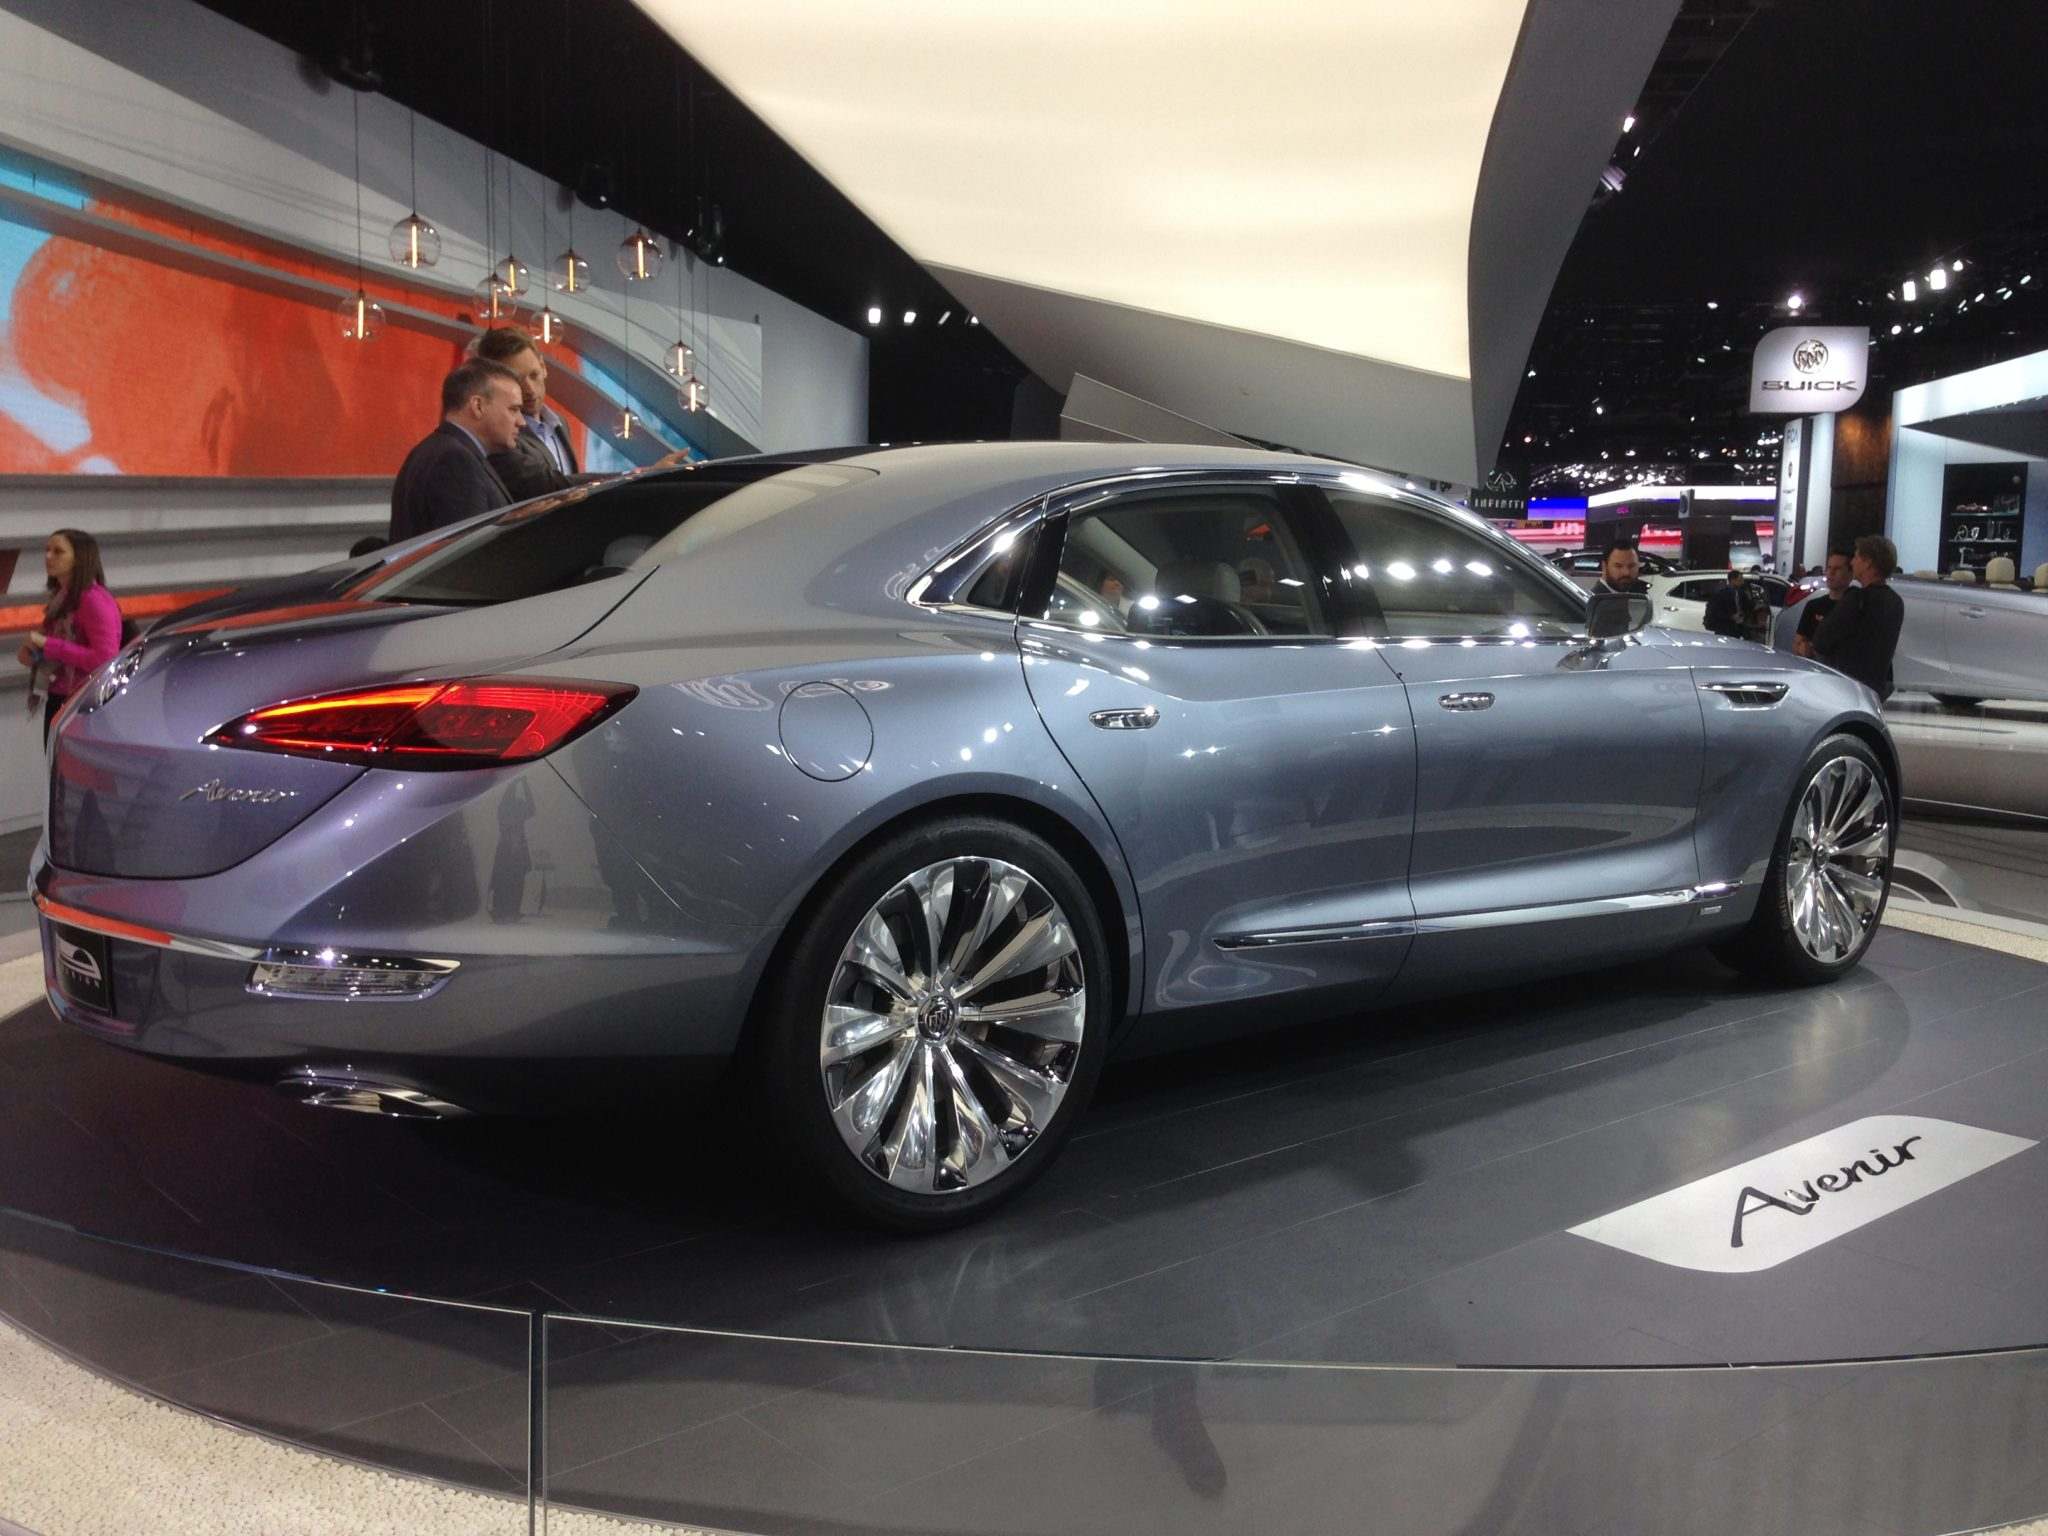 Buick Avenir concept at the 2015 North American International Auto Show